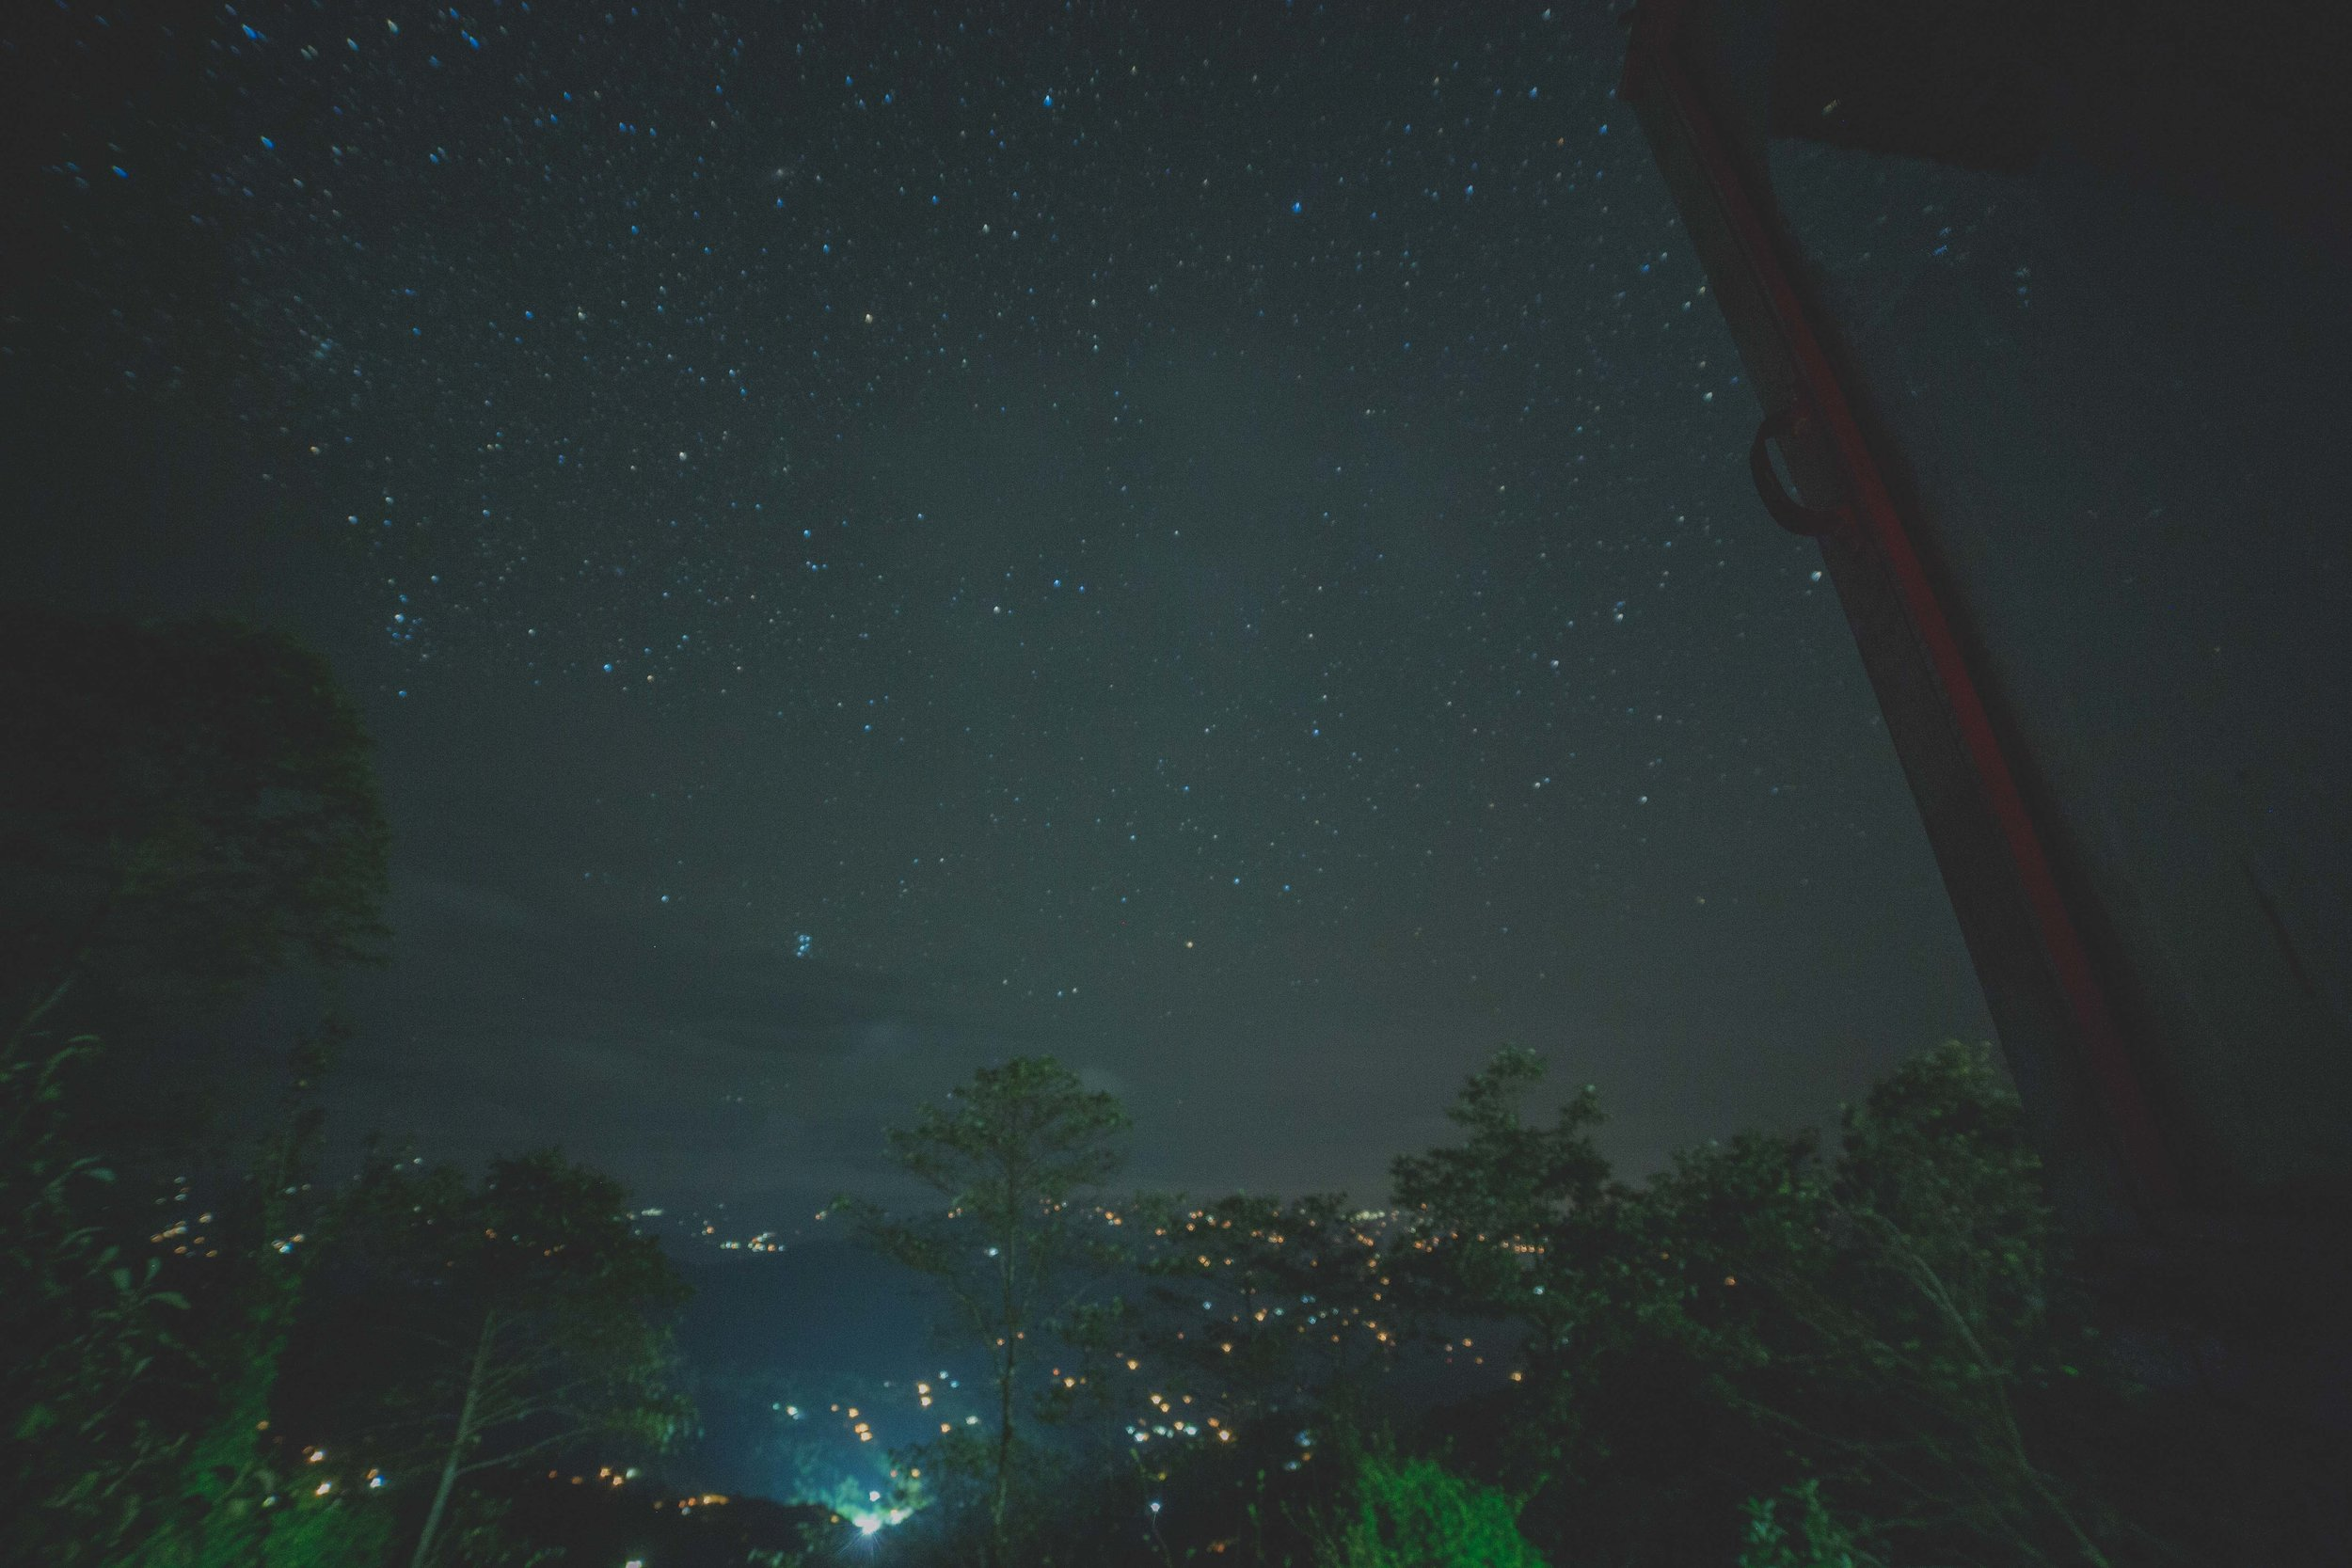 On nights like these. People fall in love. Surrounded by stars and nature. Not anyone but only two souls.